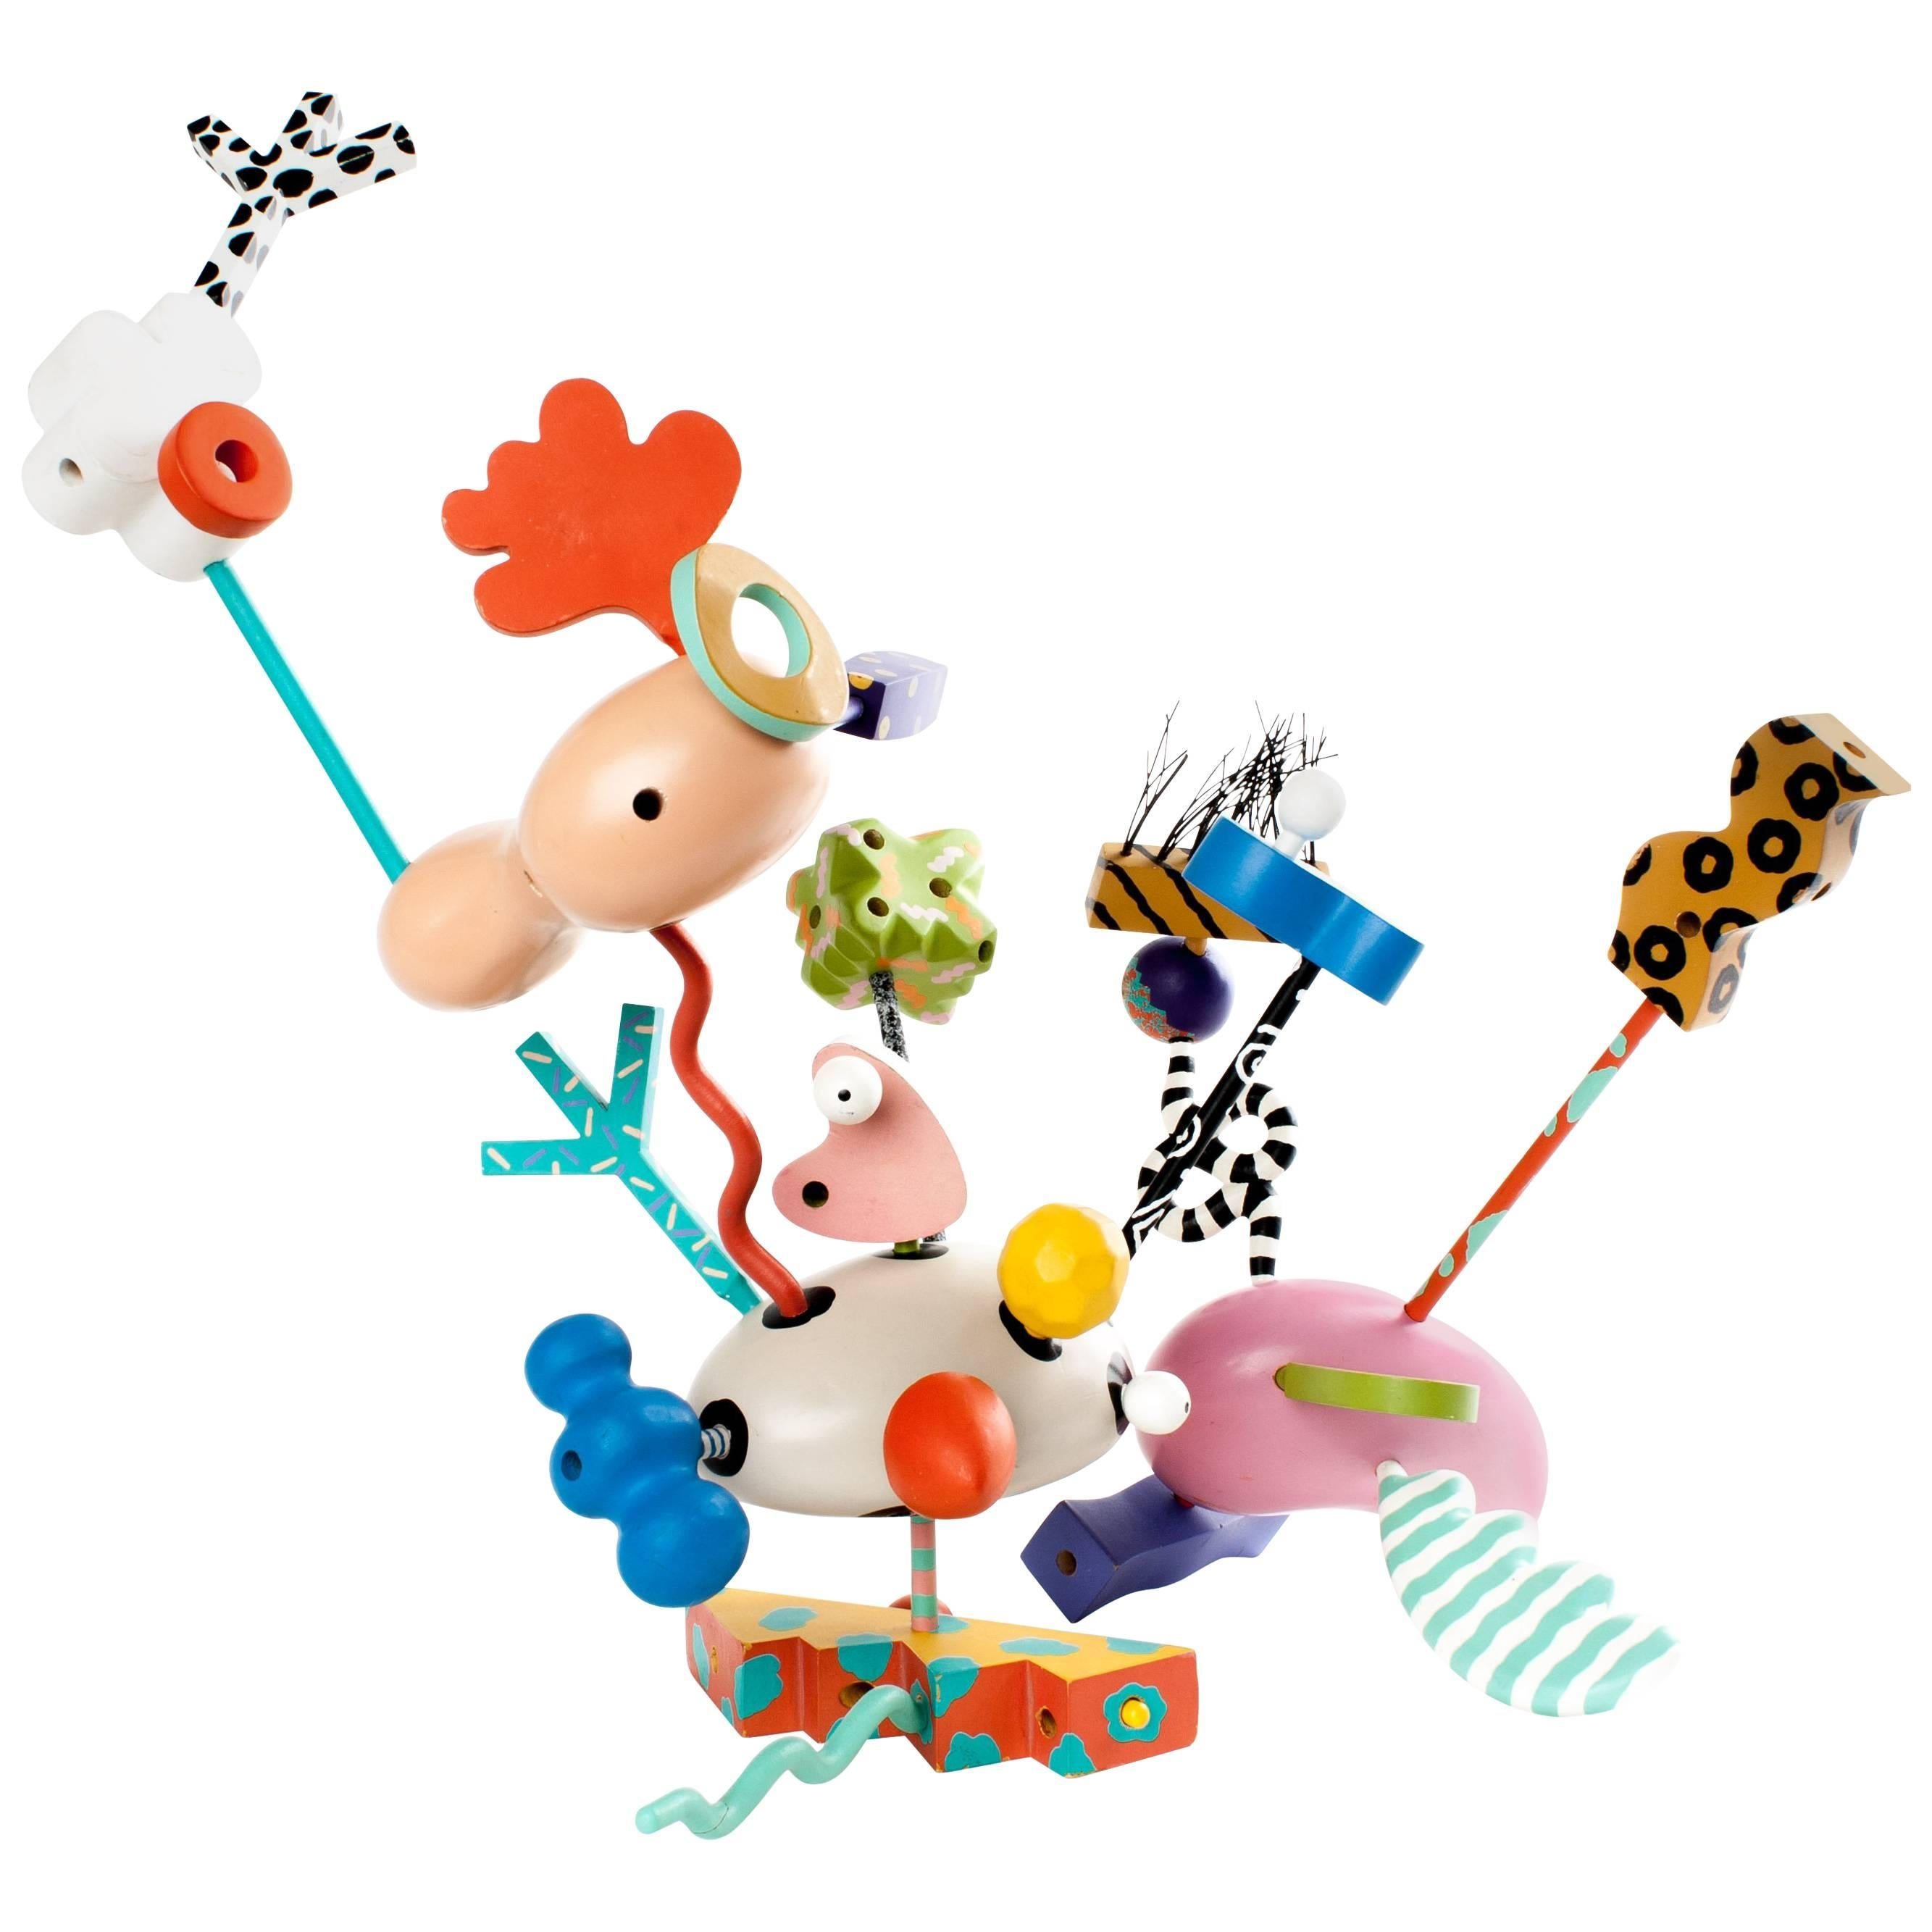 Memphis Zolo Wooden Toys, Designed By Byron Glaser And Sandra Higashi, Moma